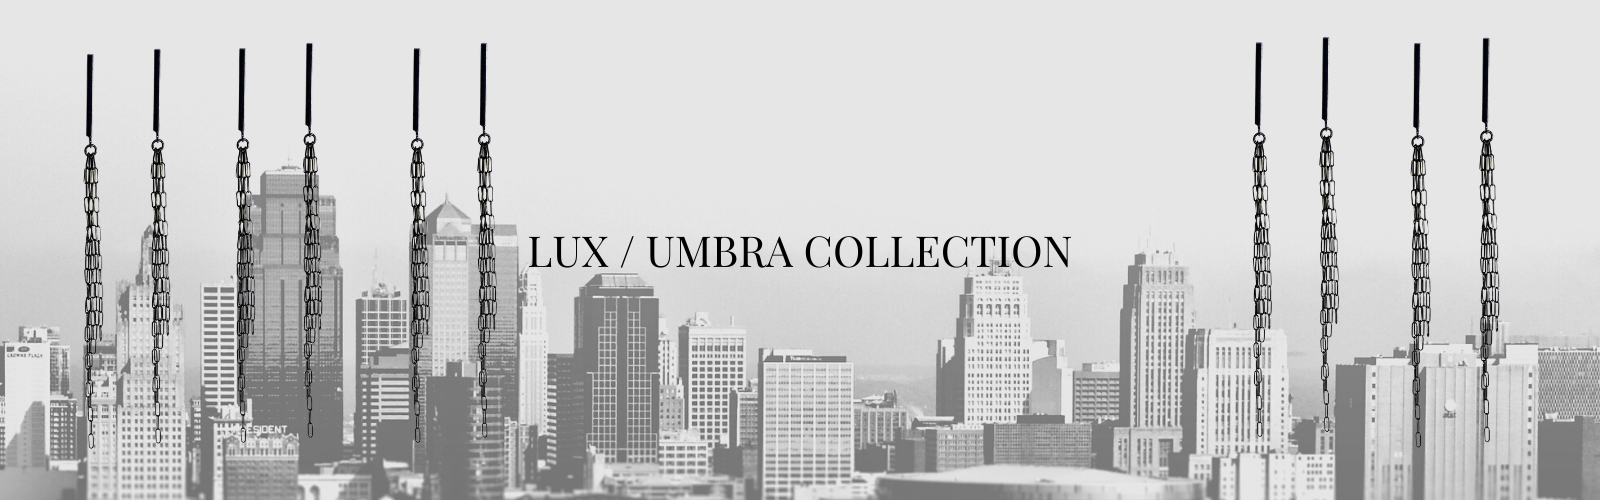 Lux / Umbra Collection